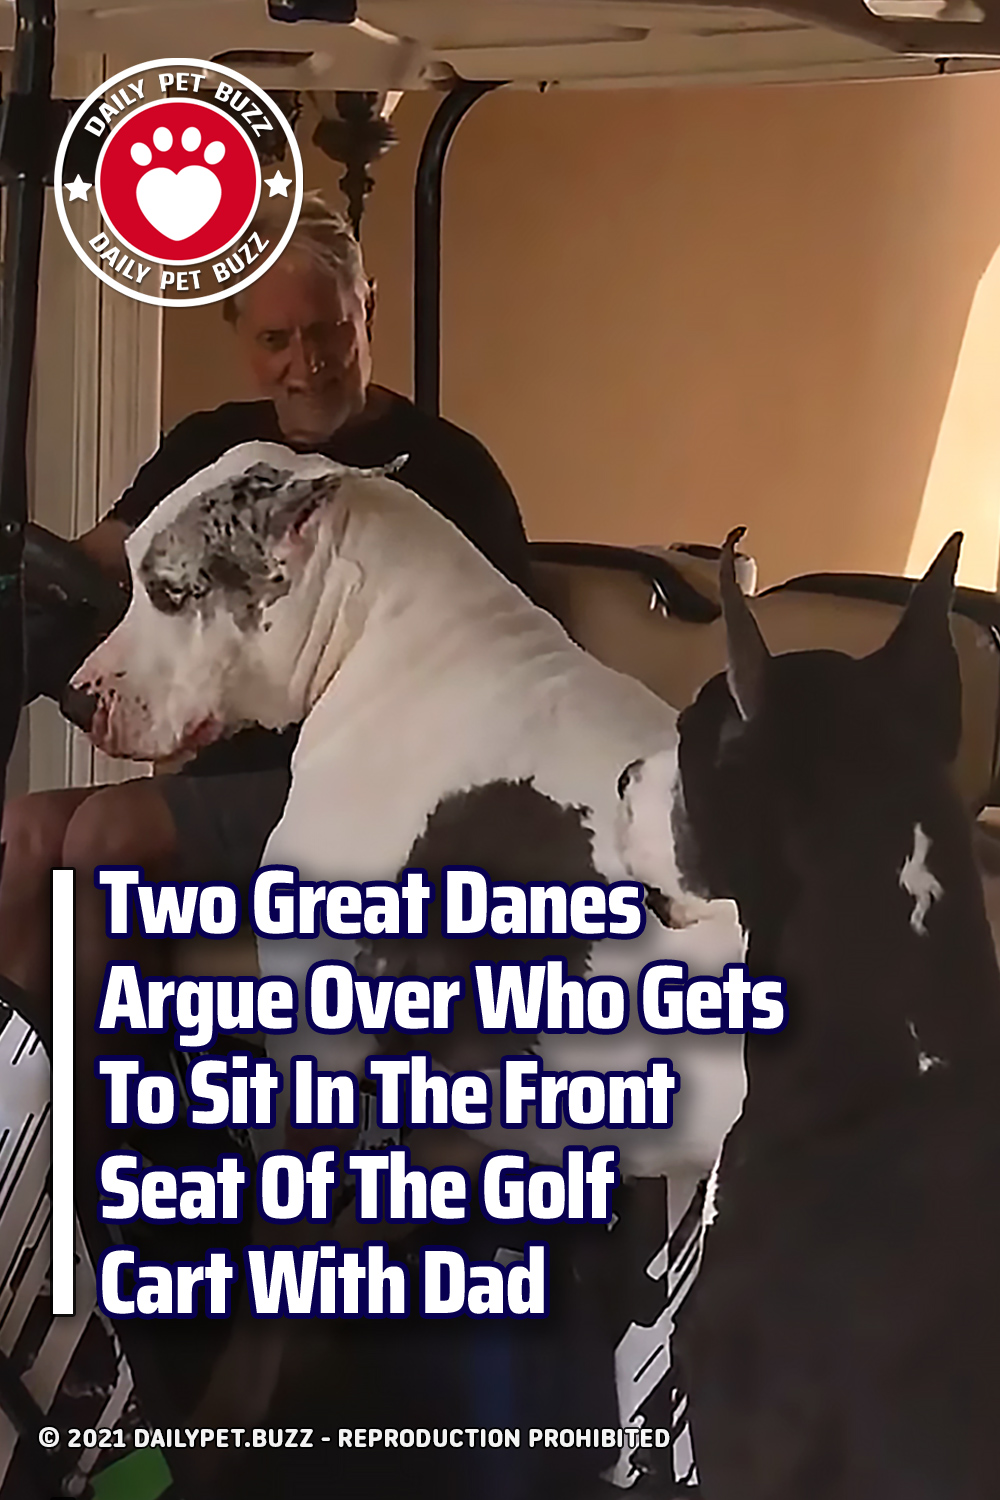 Two Great Danes Argue Over Who Gets To Sit In The Front Seat Of The Golf Cart With Dad